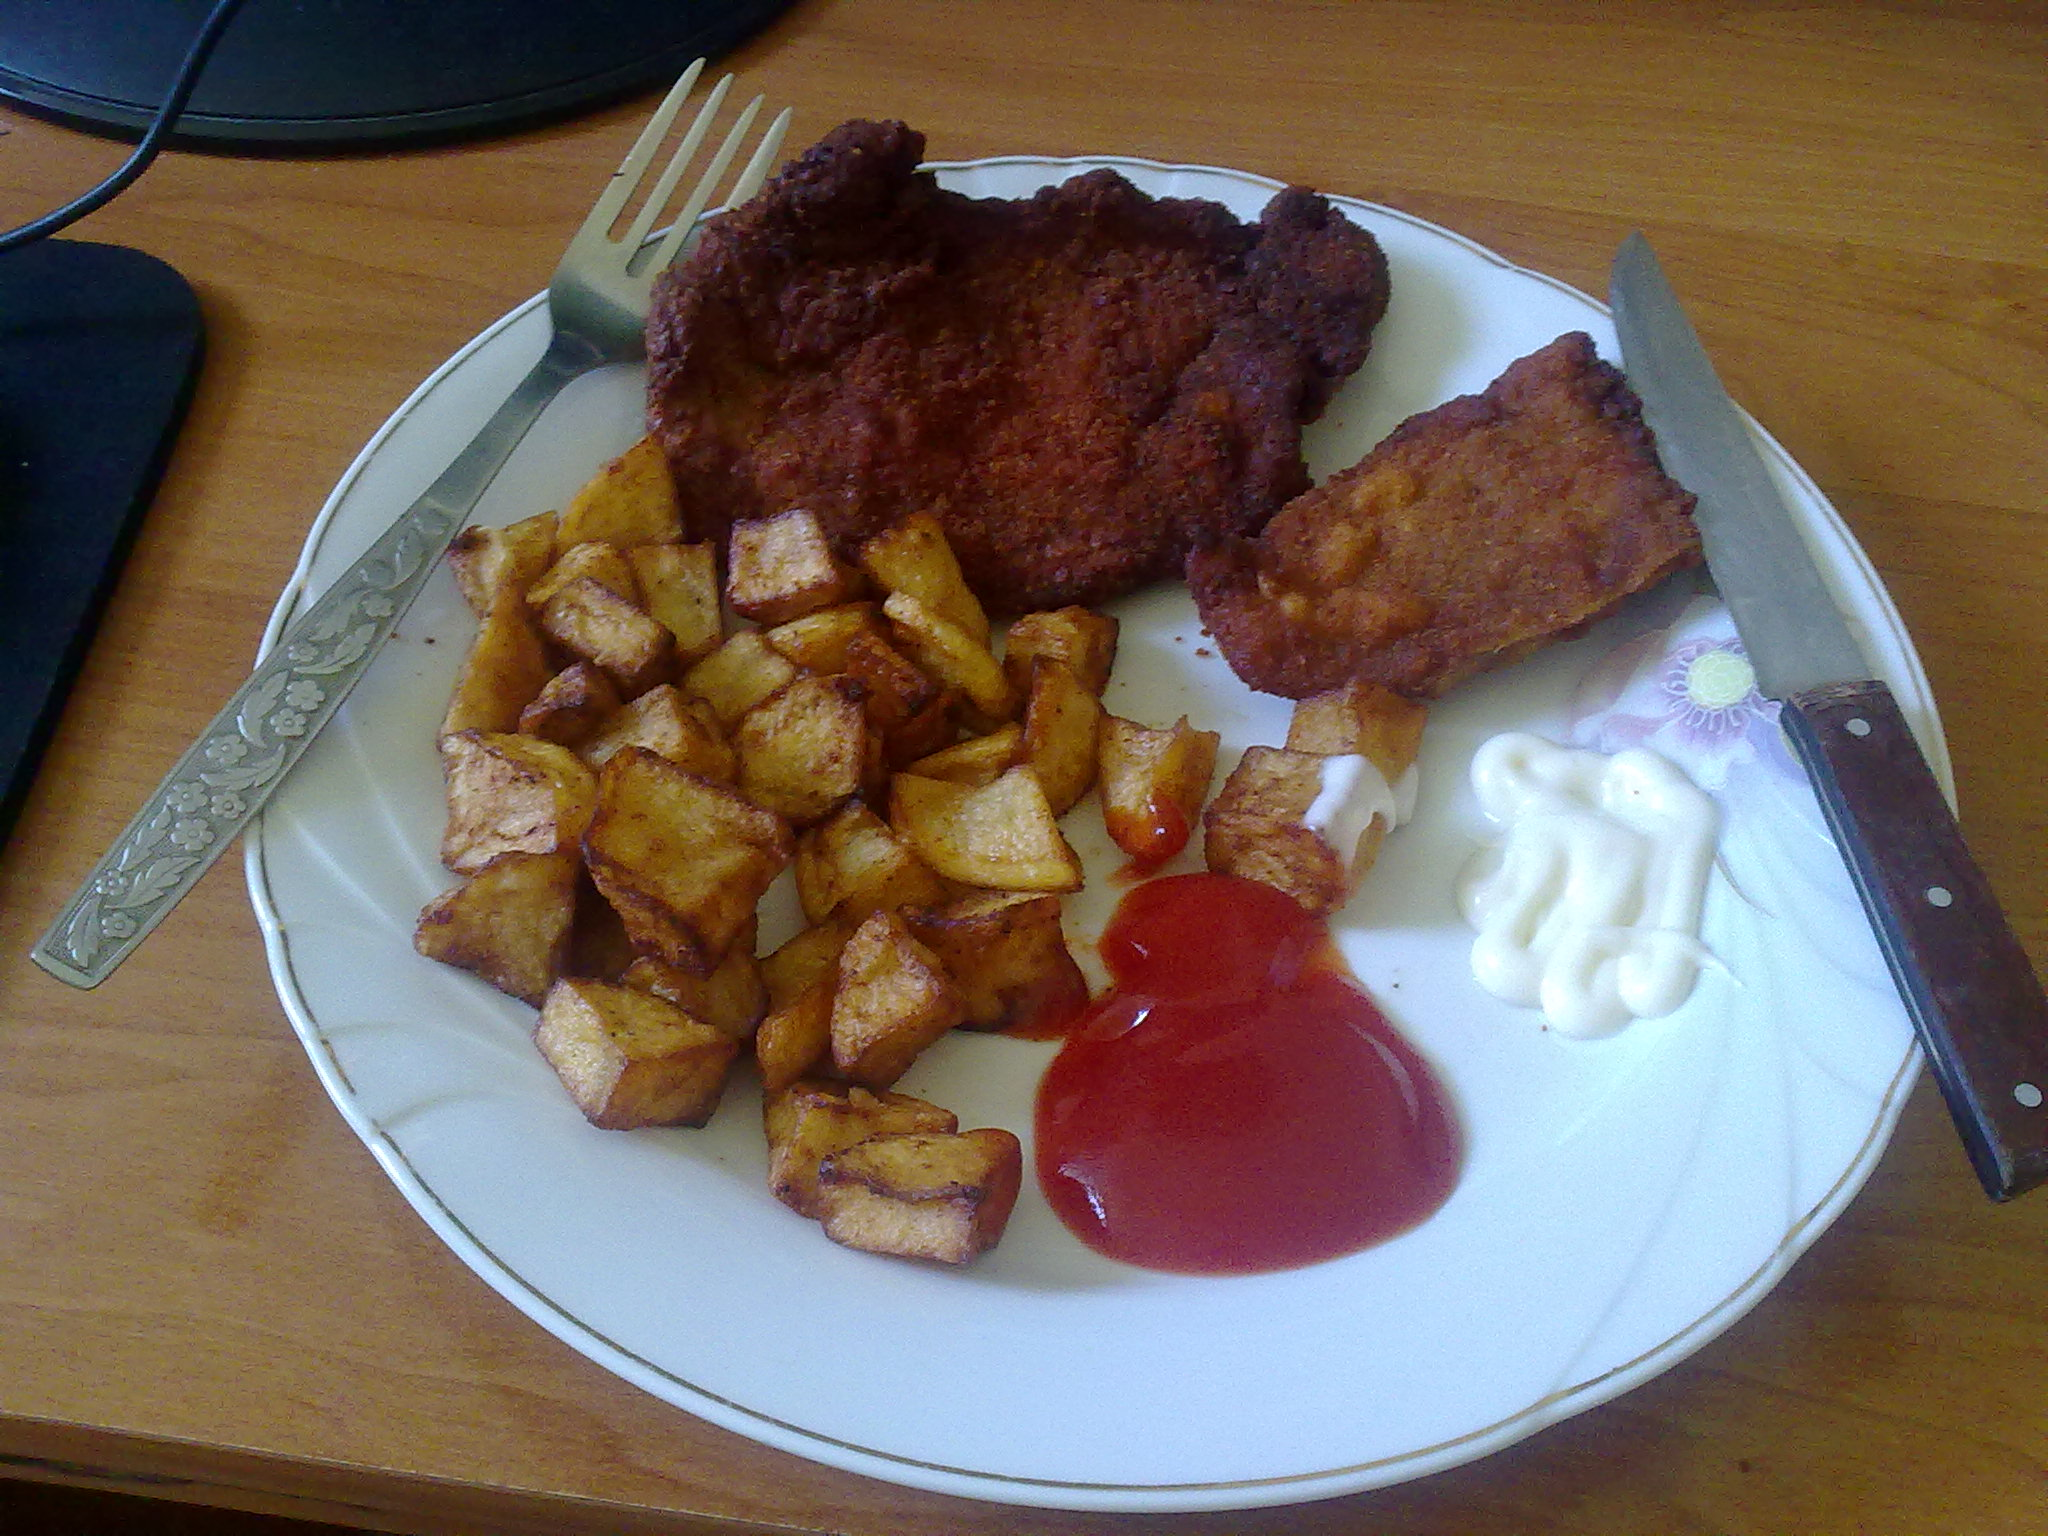 https://foodloader.net/glKz_2010-08-26_meat_in_crumbs_with_french_fries_&ketchup-mayonnai.jpg